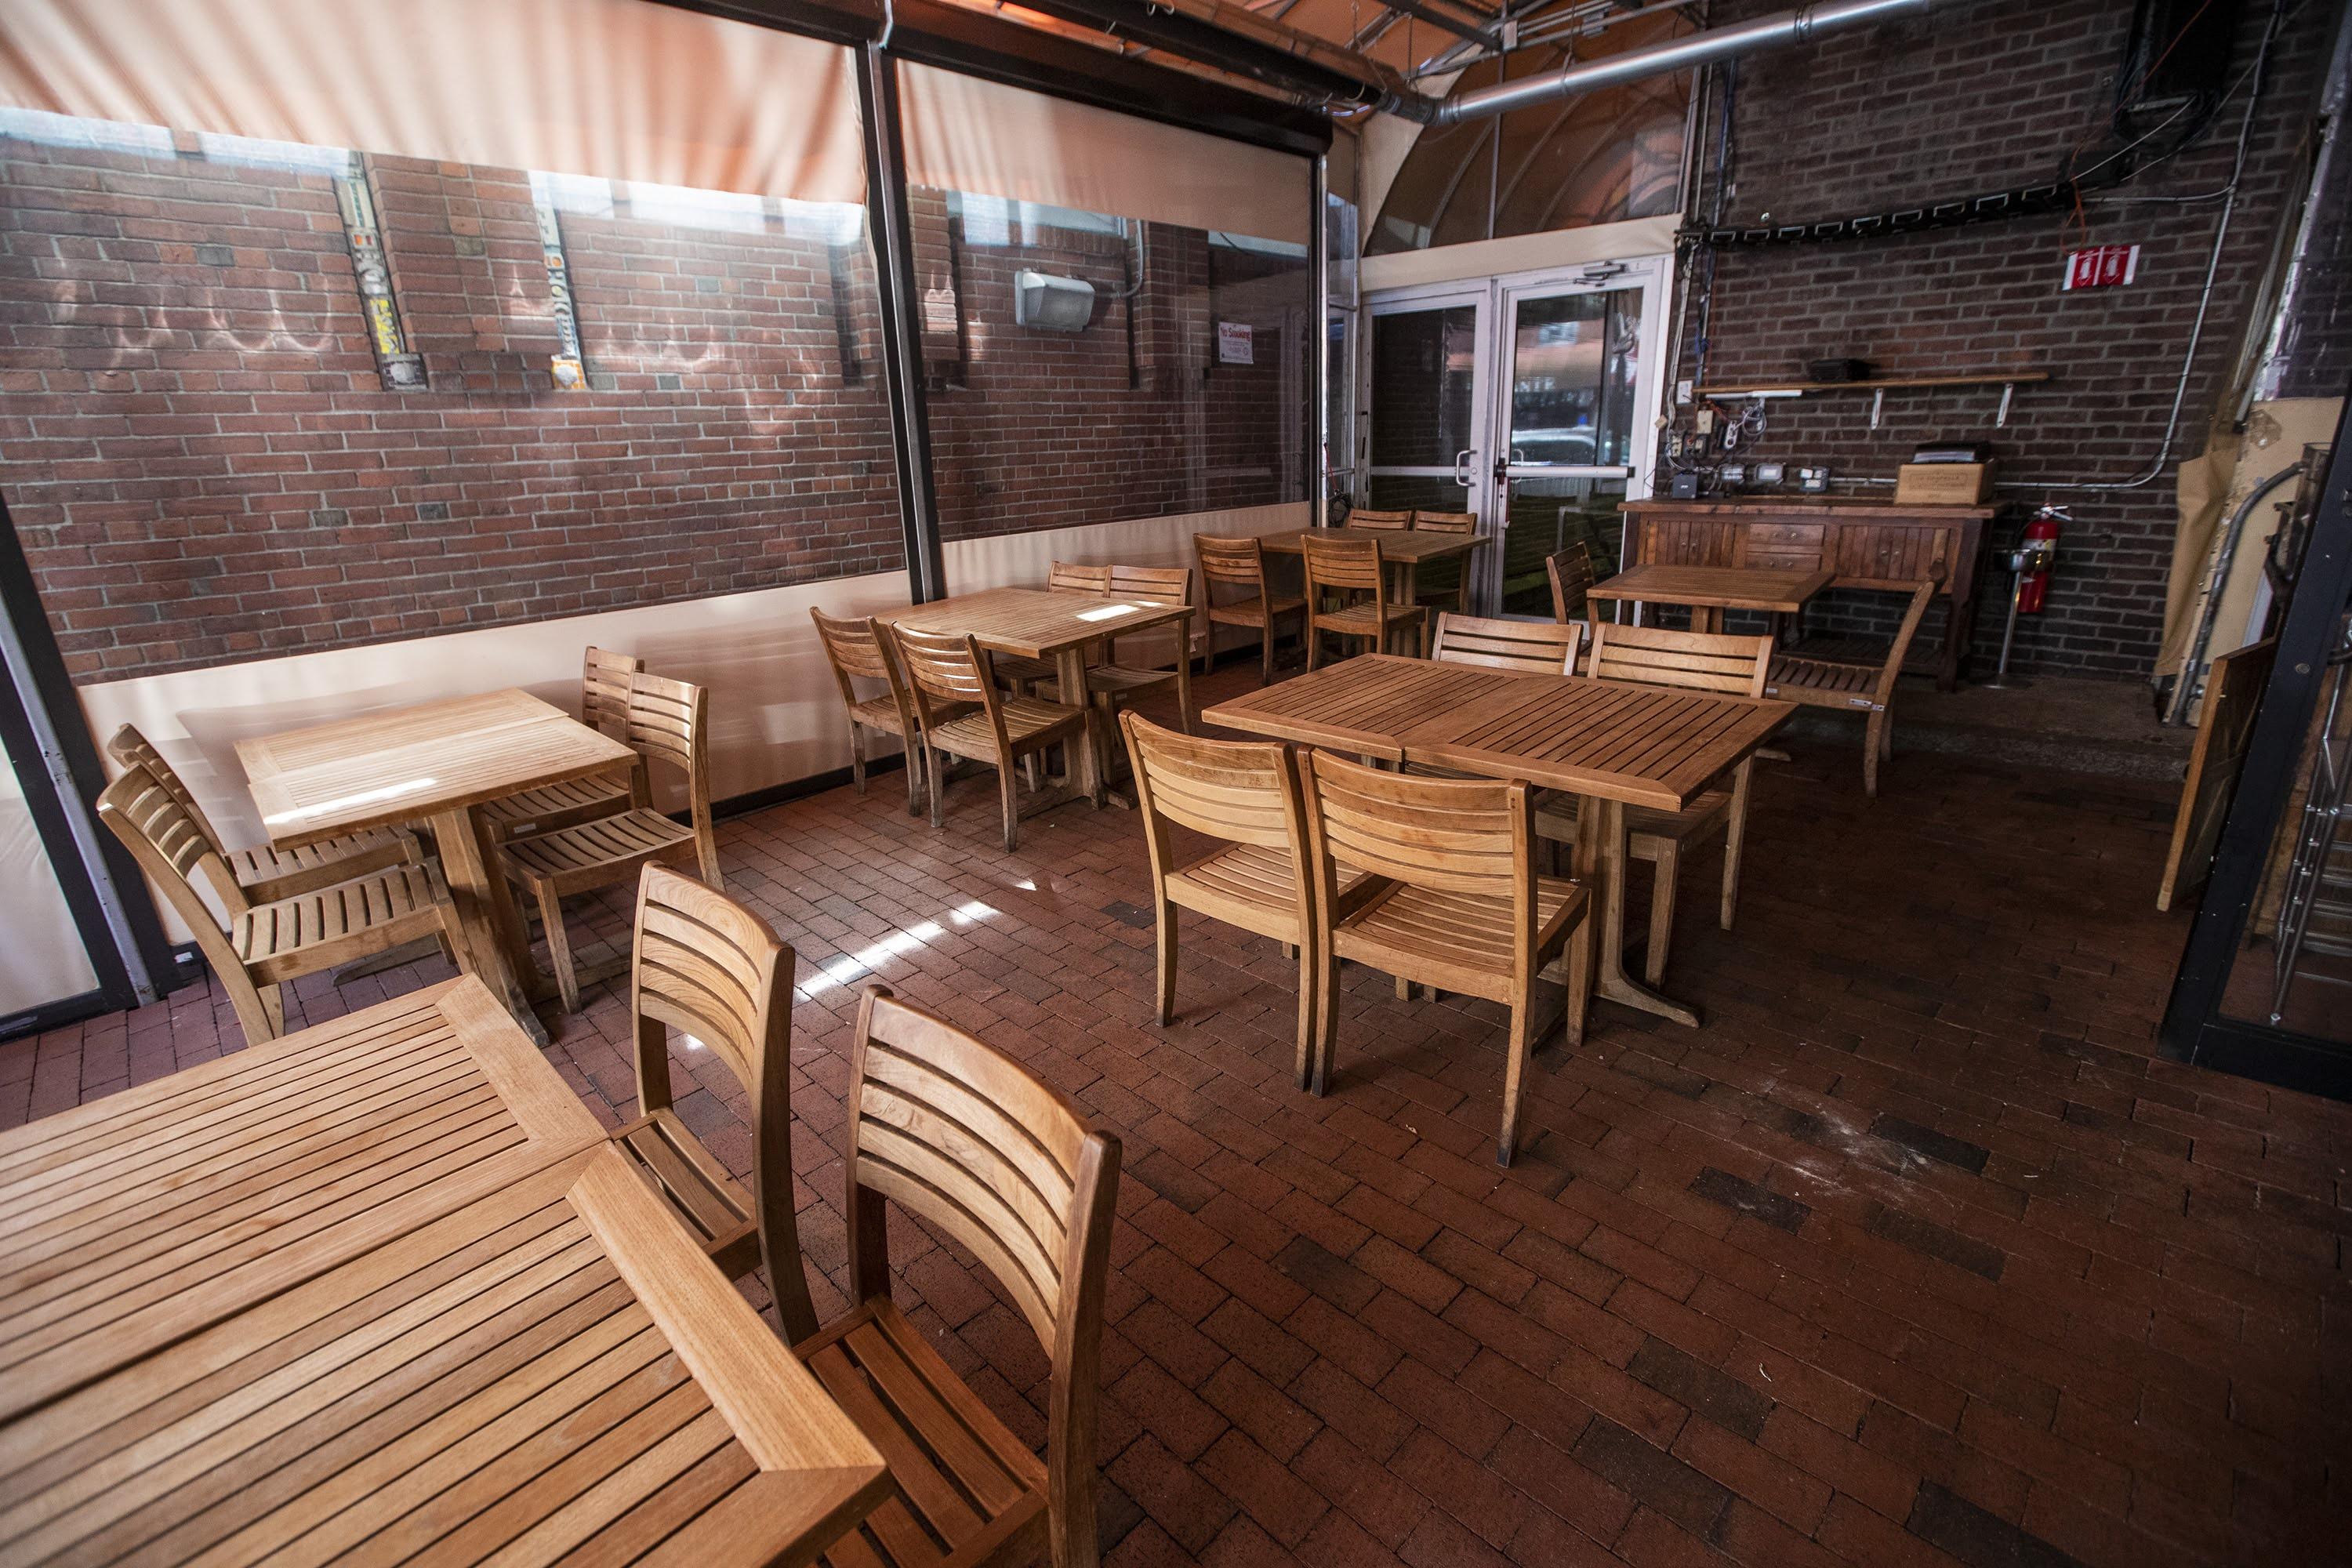 Tables on the Trattoria il Panino patio are spaced 6 feet apart. (Jesse Costa/WBUR)